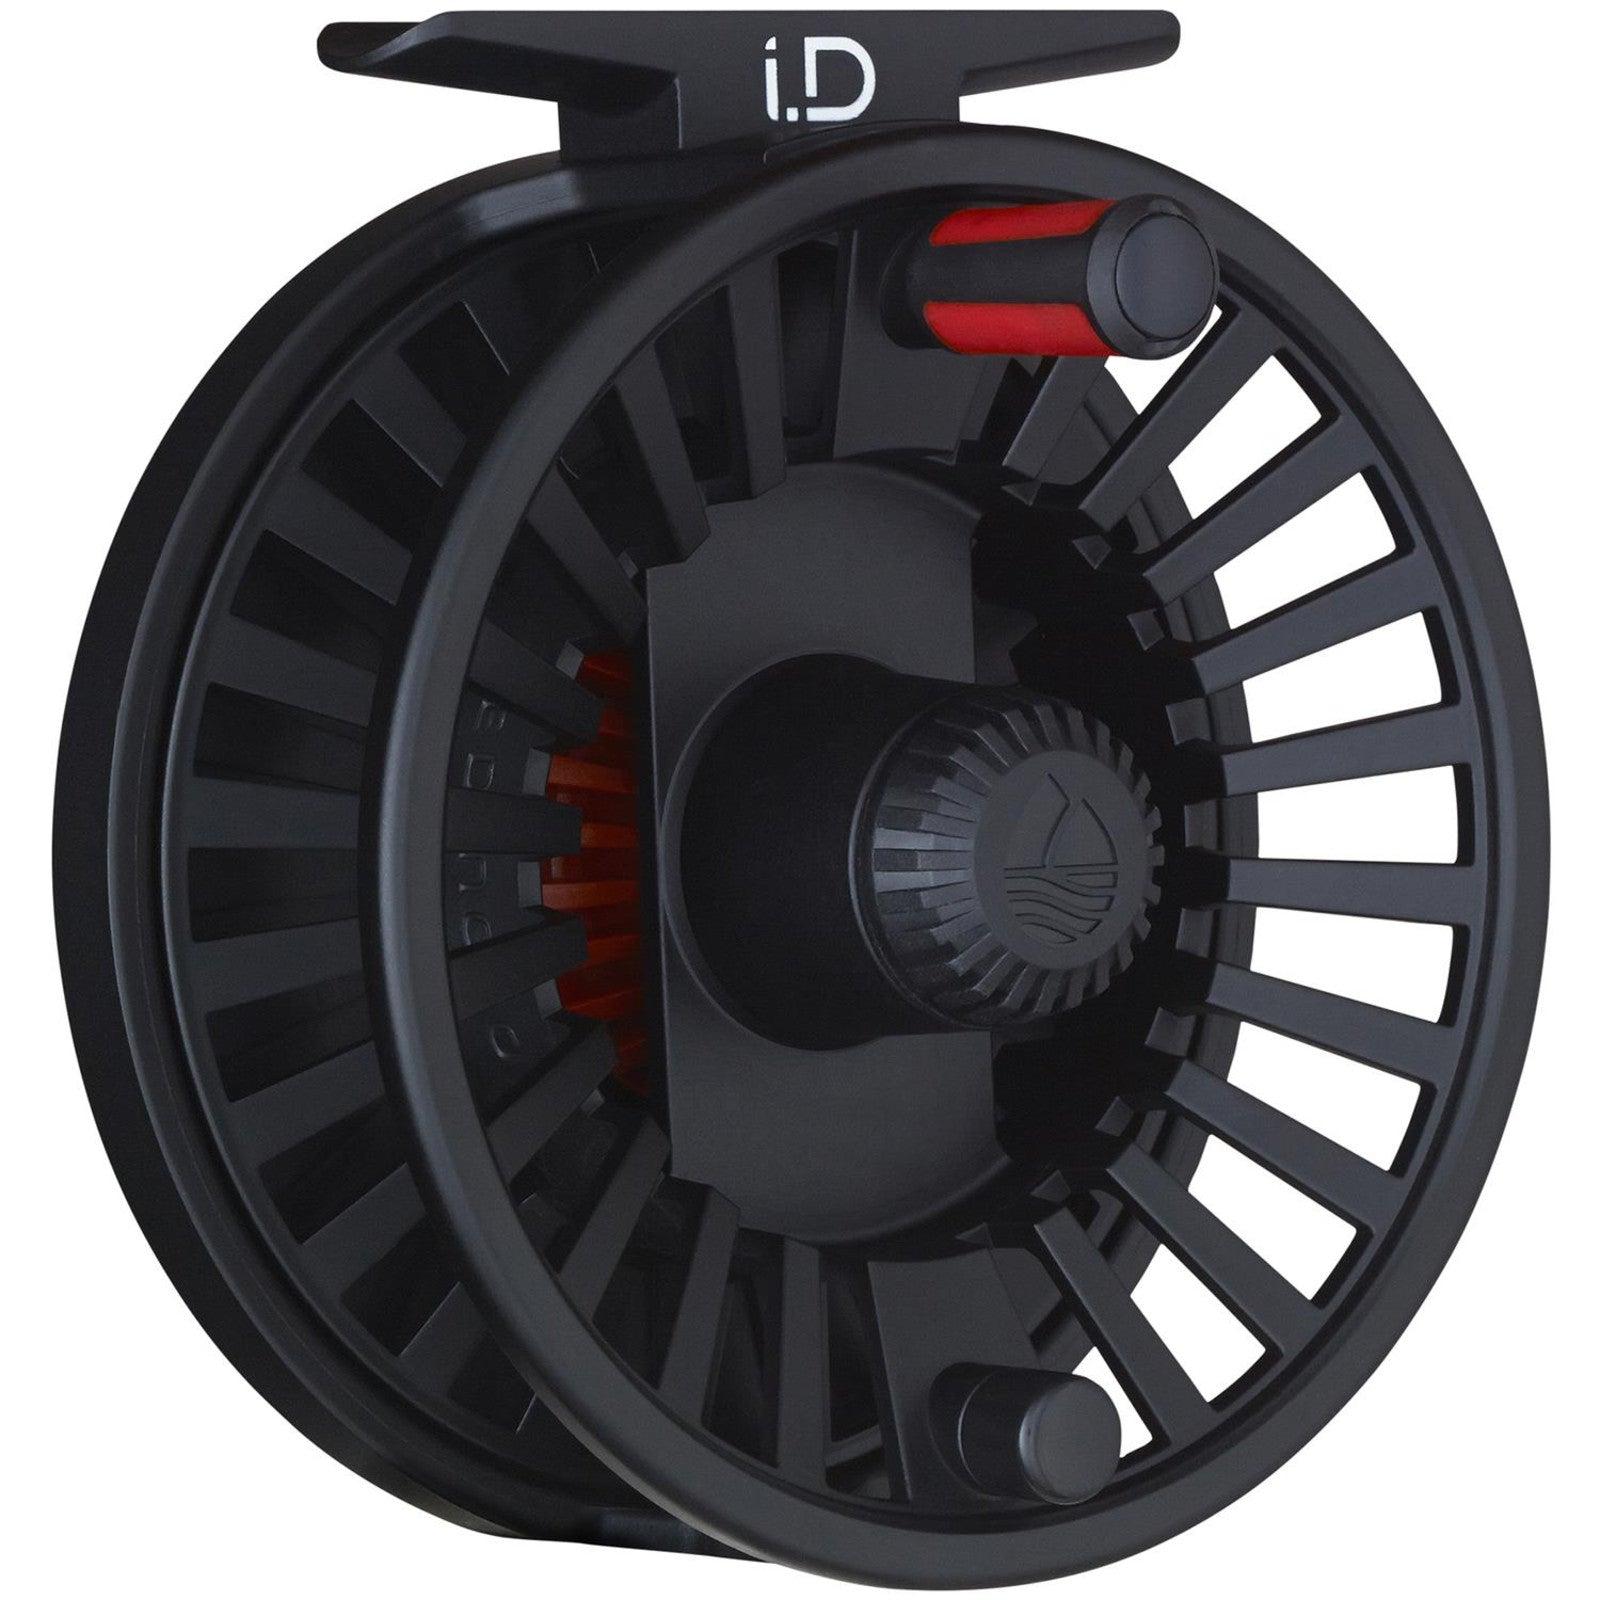 Redington i.D. Reel Fly Reel